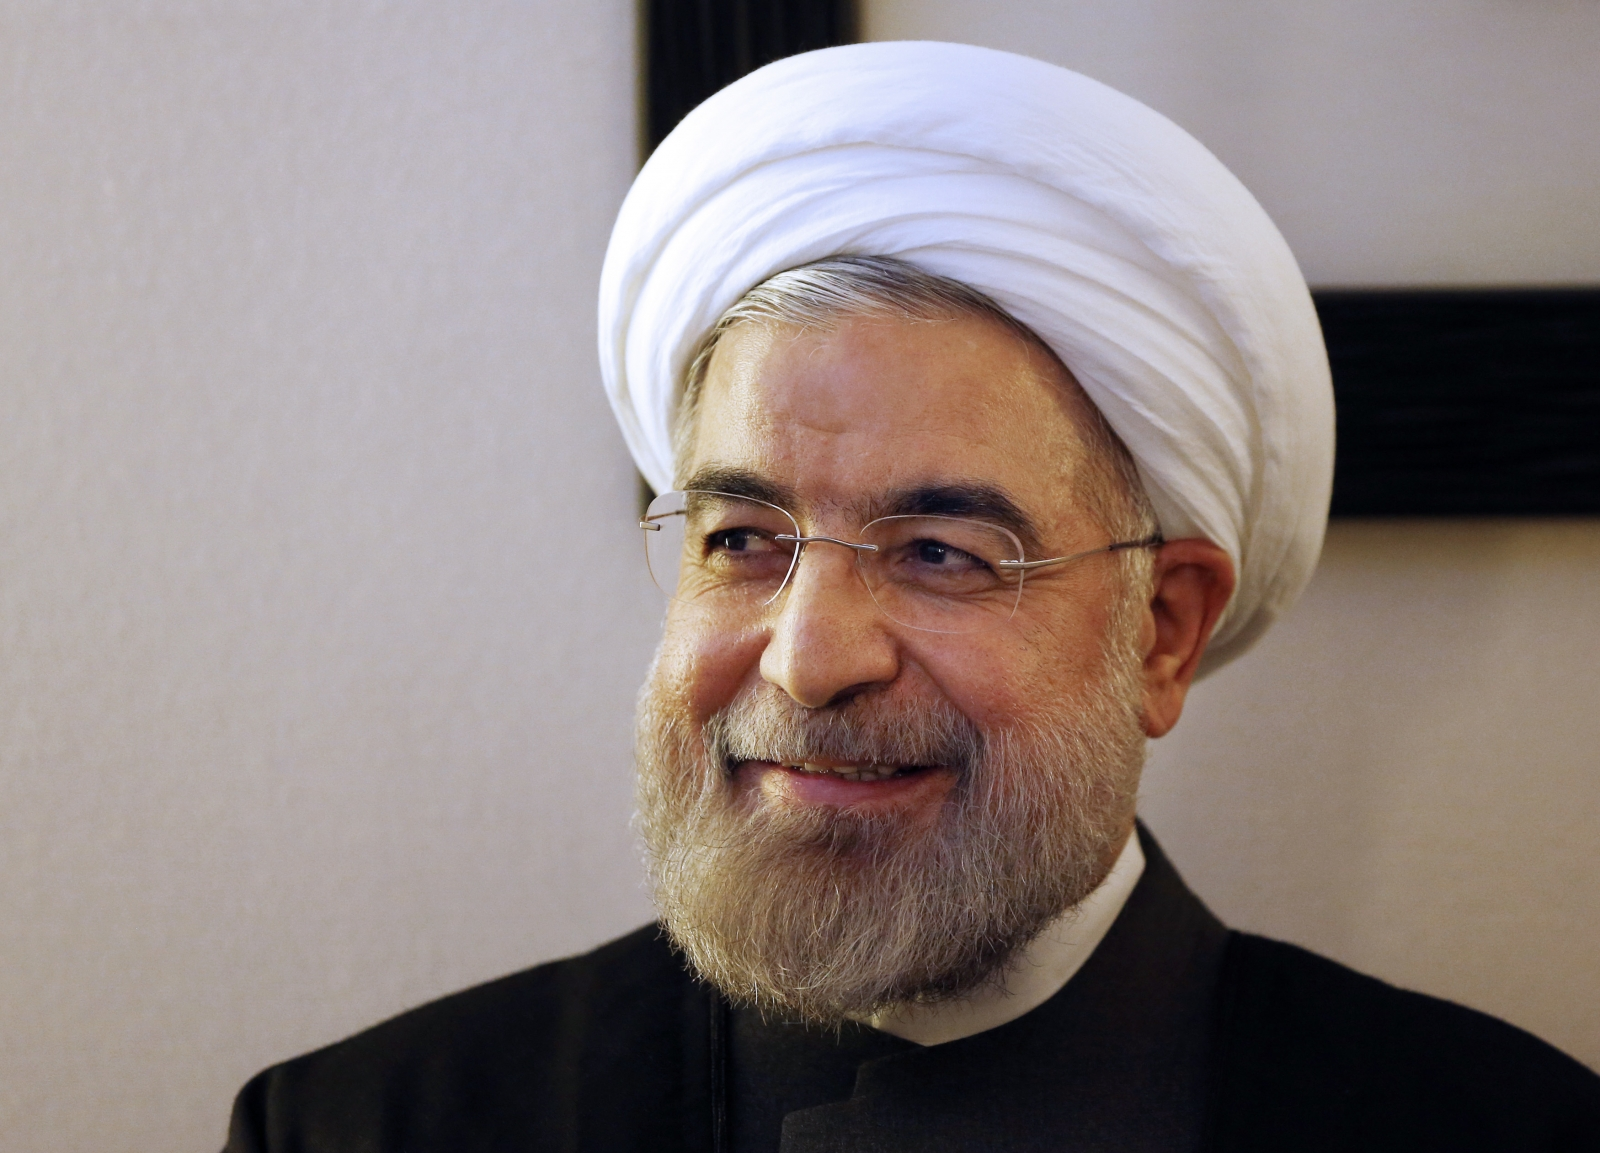 Hassan Rouhani - president of Iran